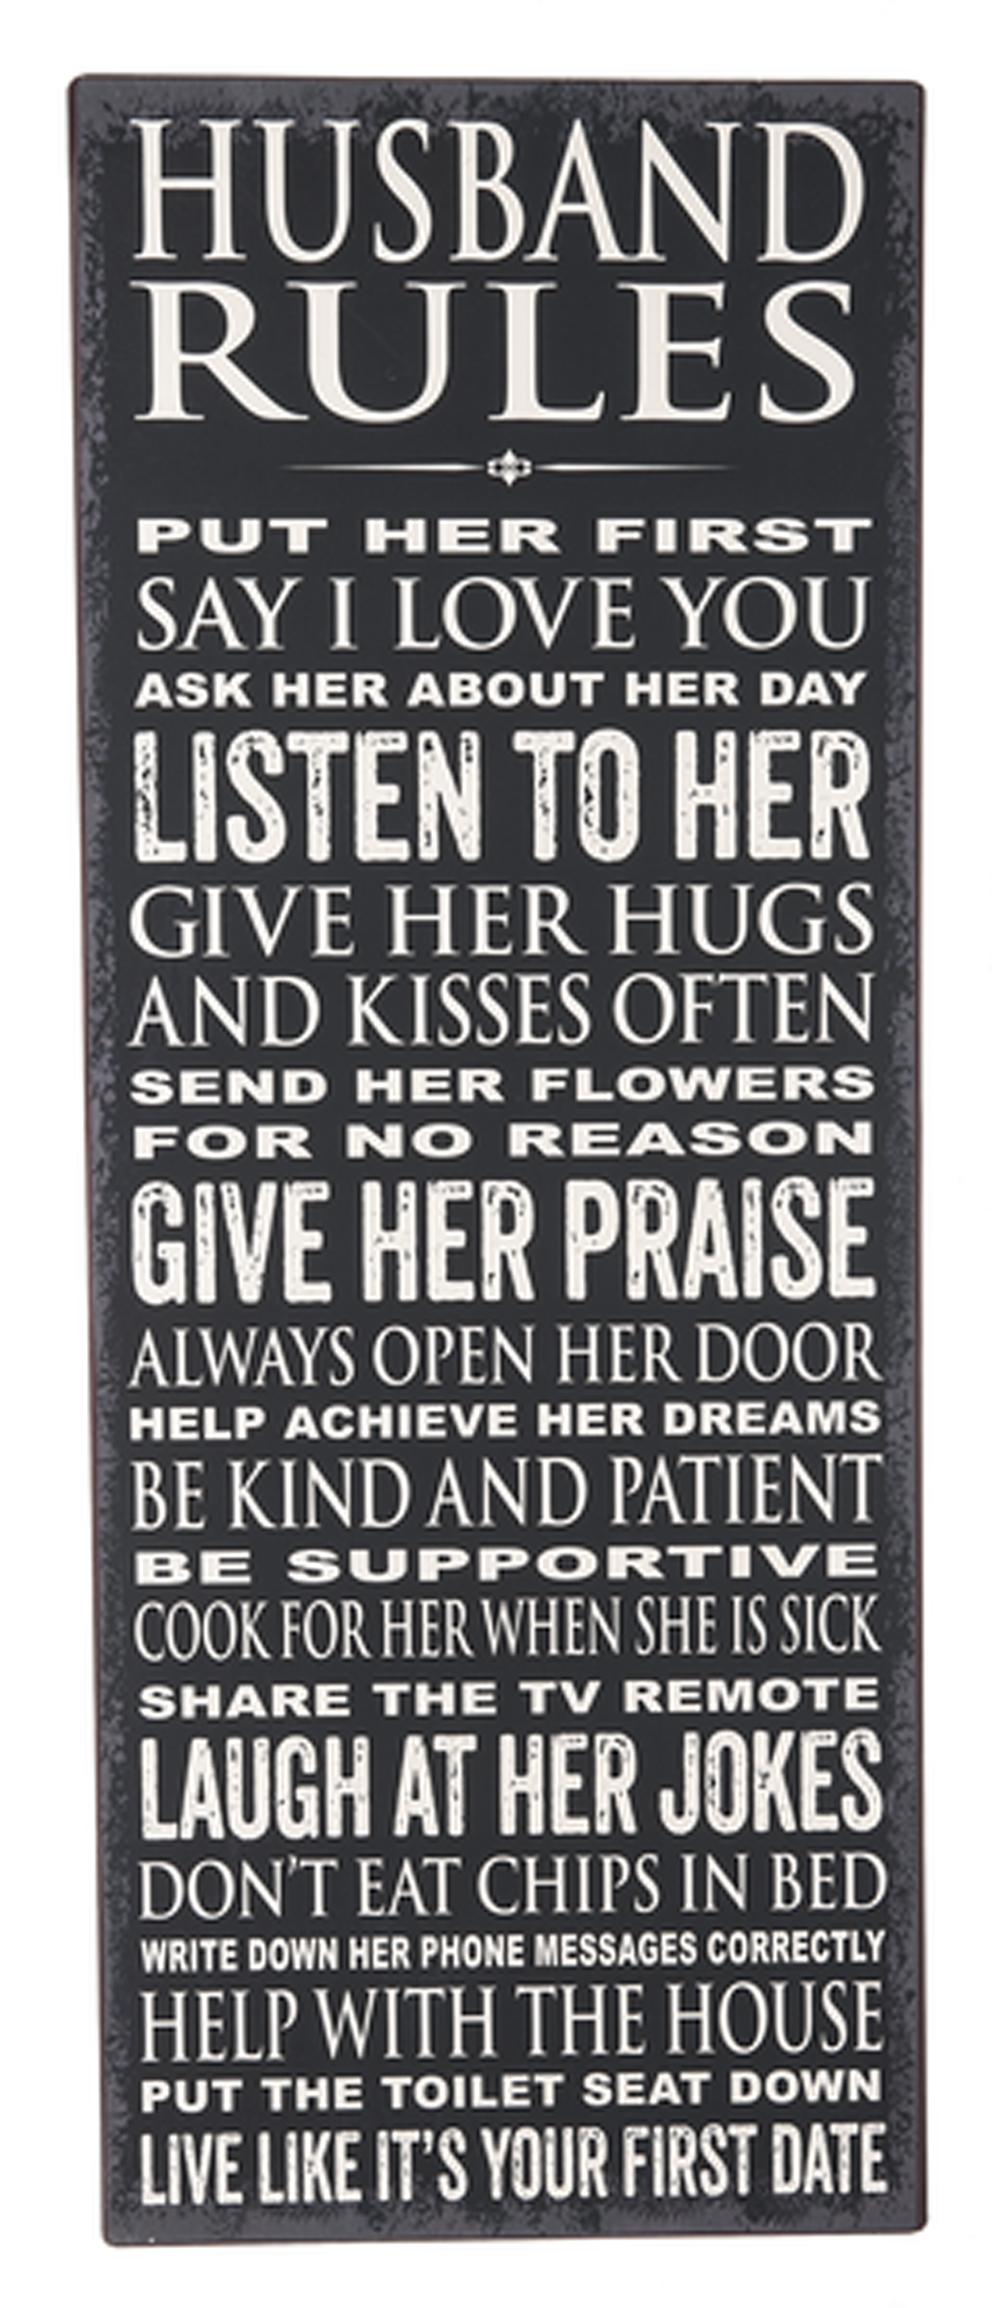 Husband Rules Tall Metal Sign - By Ganz